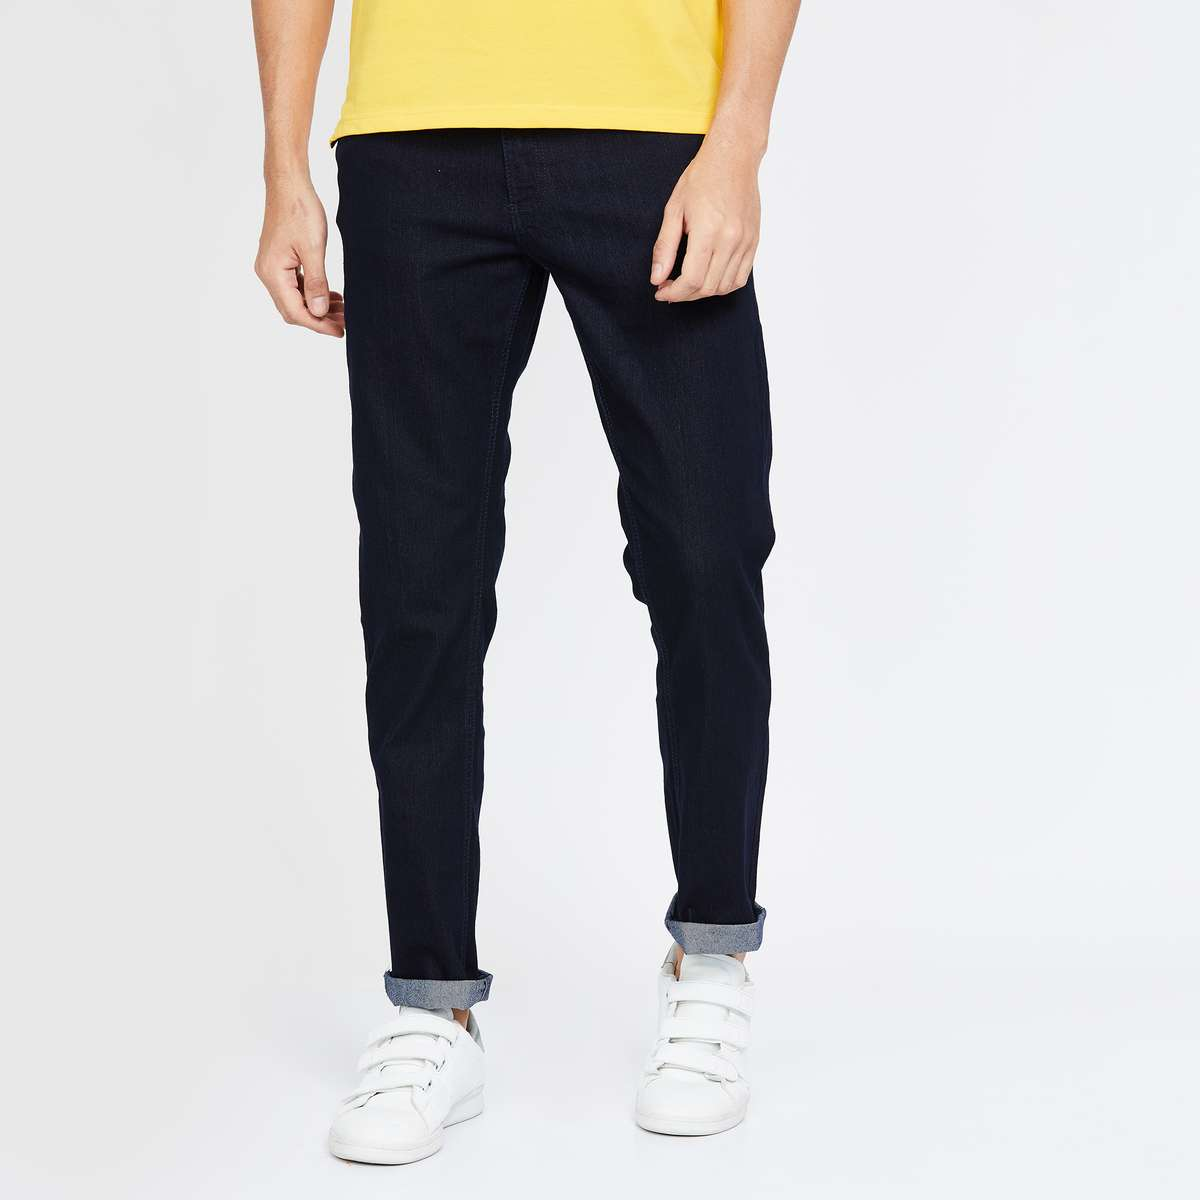 FORCA Men Solid Slim Tapered Jeans